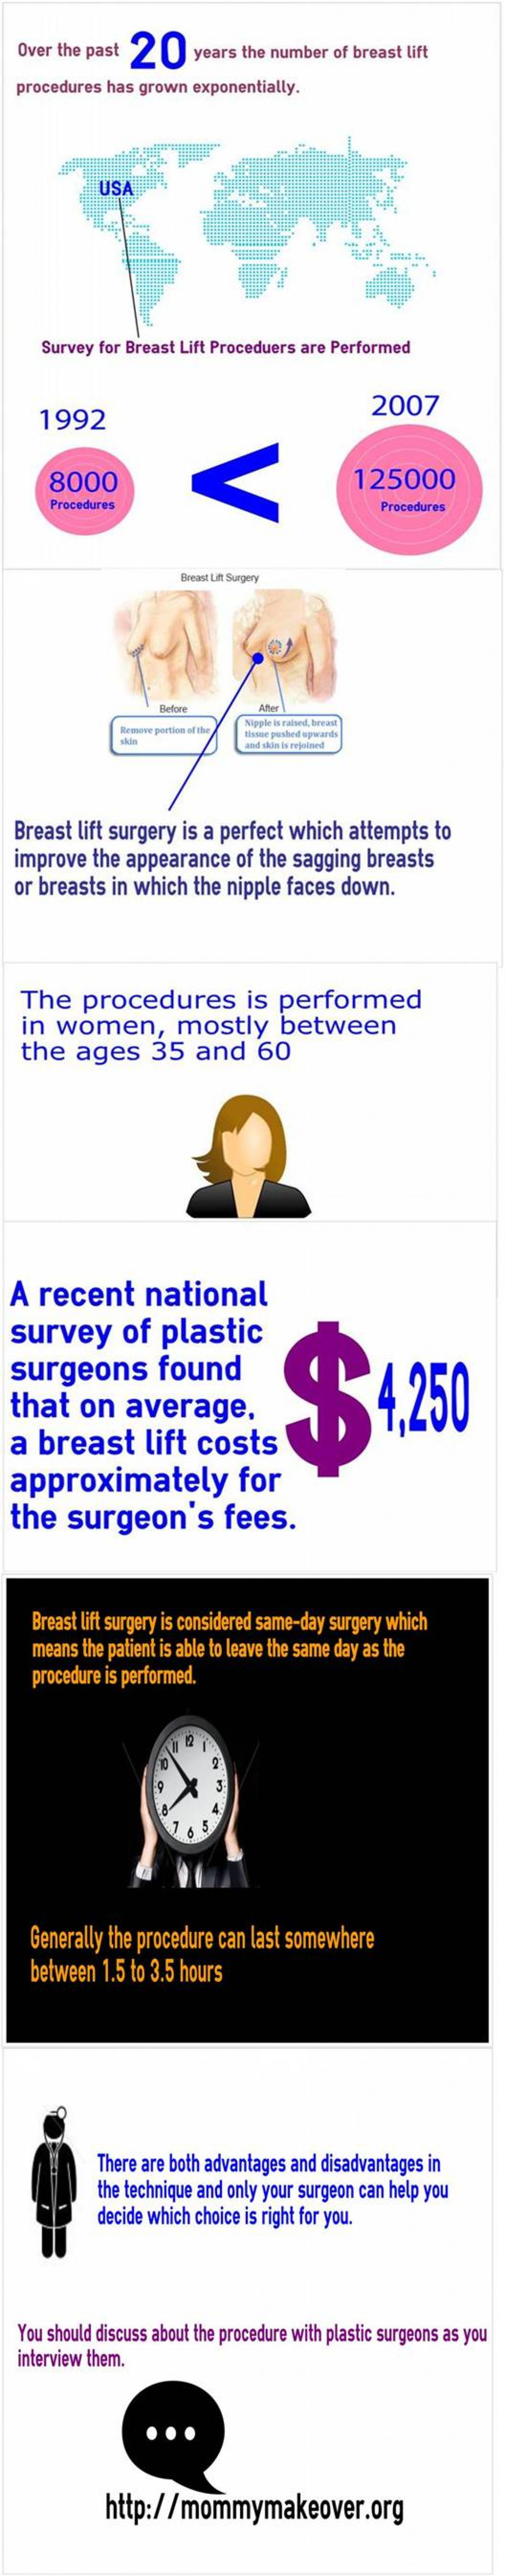 Danville Breast Lift Infographic